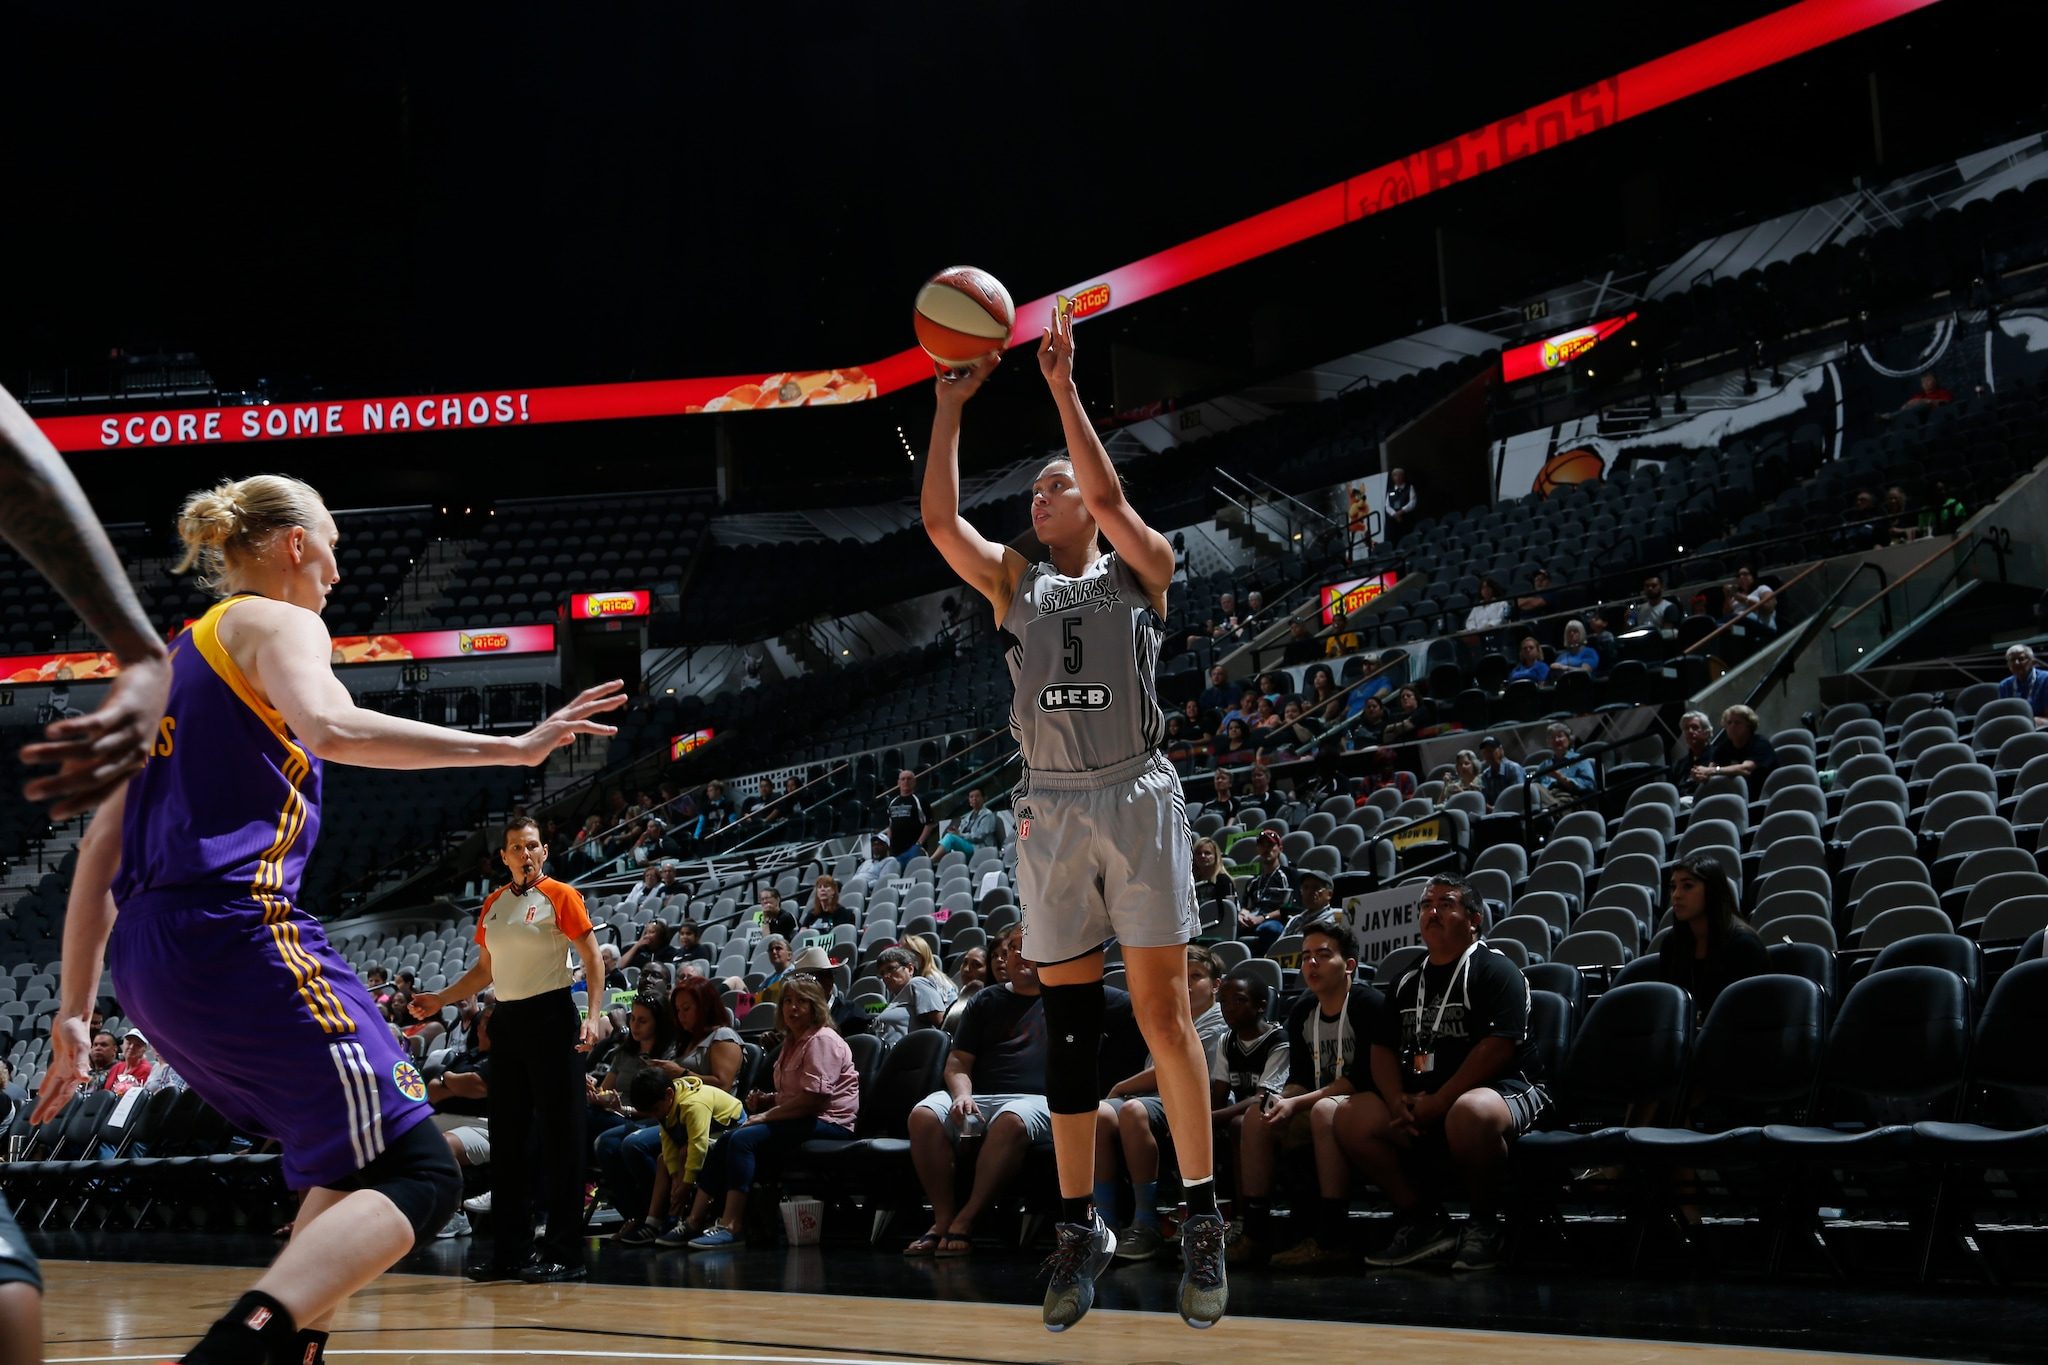 SAN ANTONIO, TX - MAY 9: Dearica Hamby #5 of the San Antonio Stars shoots the ball against the Los Angeles Sparks on May 9, 2016 at the AT&T Center in San Antonio, Texas. NOTE TO USER: User expressly acknowledges and agrees that, by downloading and or using this photograph, user is consenting to the terms and conditions of the Getty Images License Agreement. Mandatory Copyright Notice: Copyright 2016 NBAE (Photos by Chris Covatta/NBAE via Getty Images)